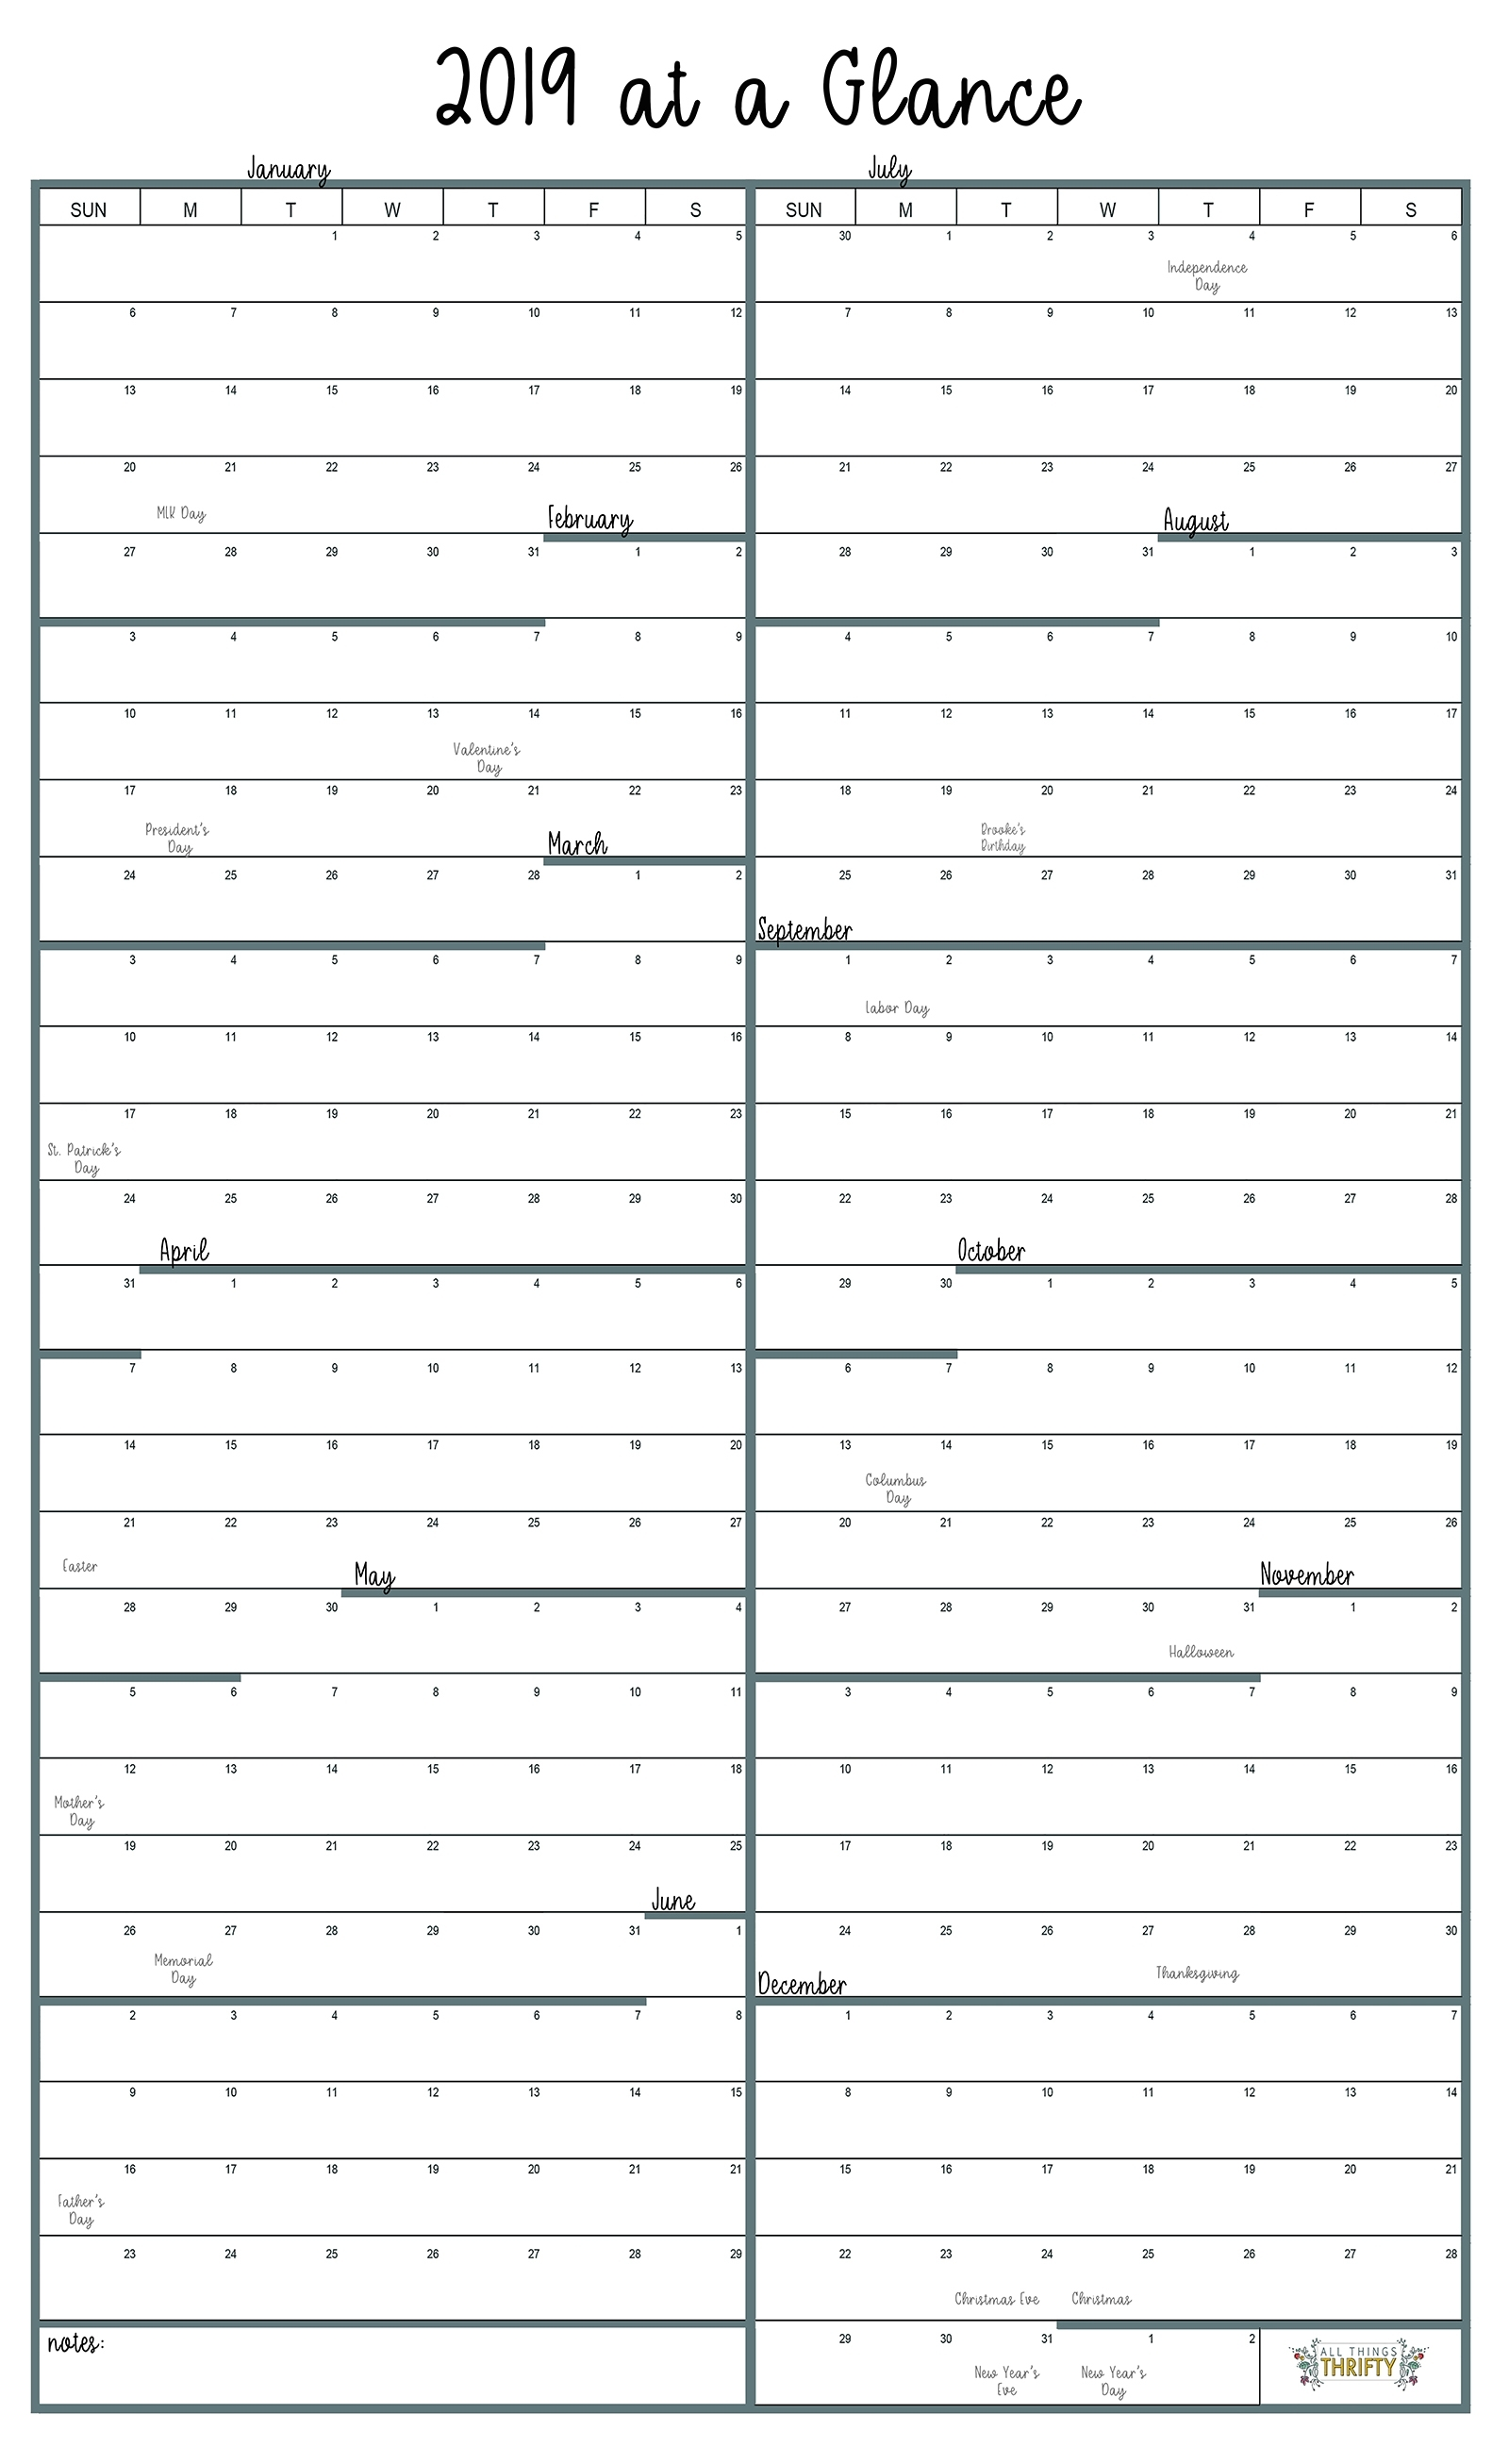 Year At A Glance Free Printable Calendar | All Things Thrifty within Template For Year At A Glance Calendar